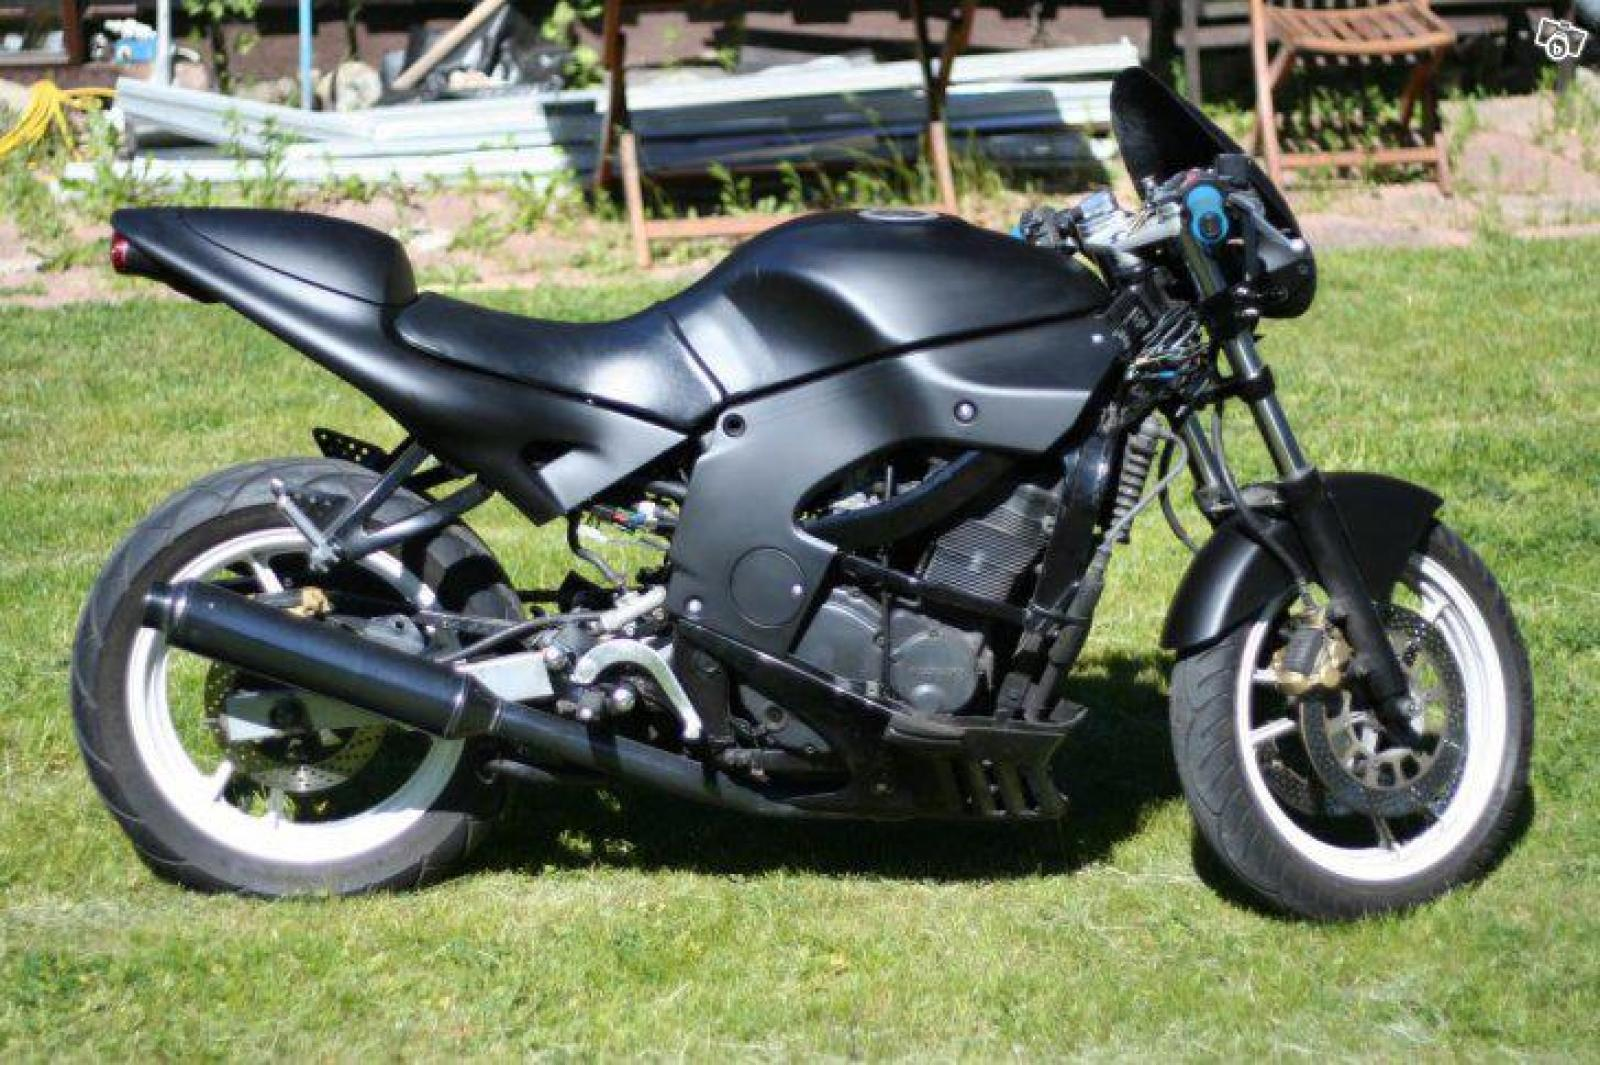 1988 suzuki gsx 600 f moto zombdrive com. Black Bedroom Furniture Sets. Home Design Ideas